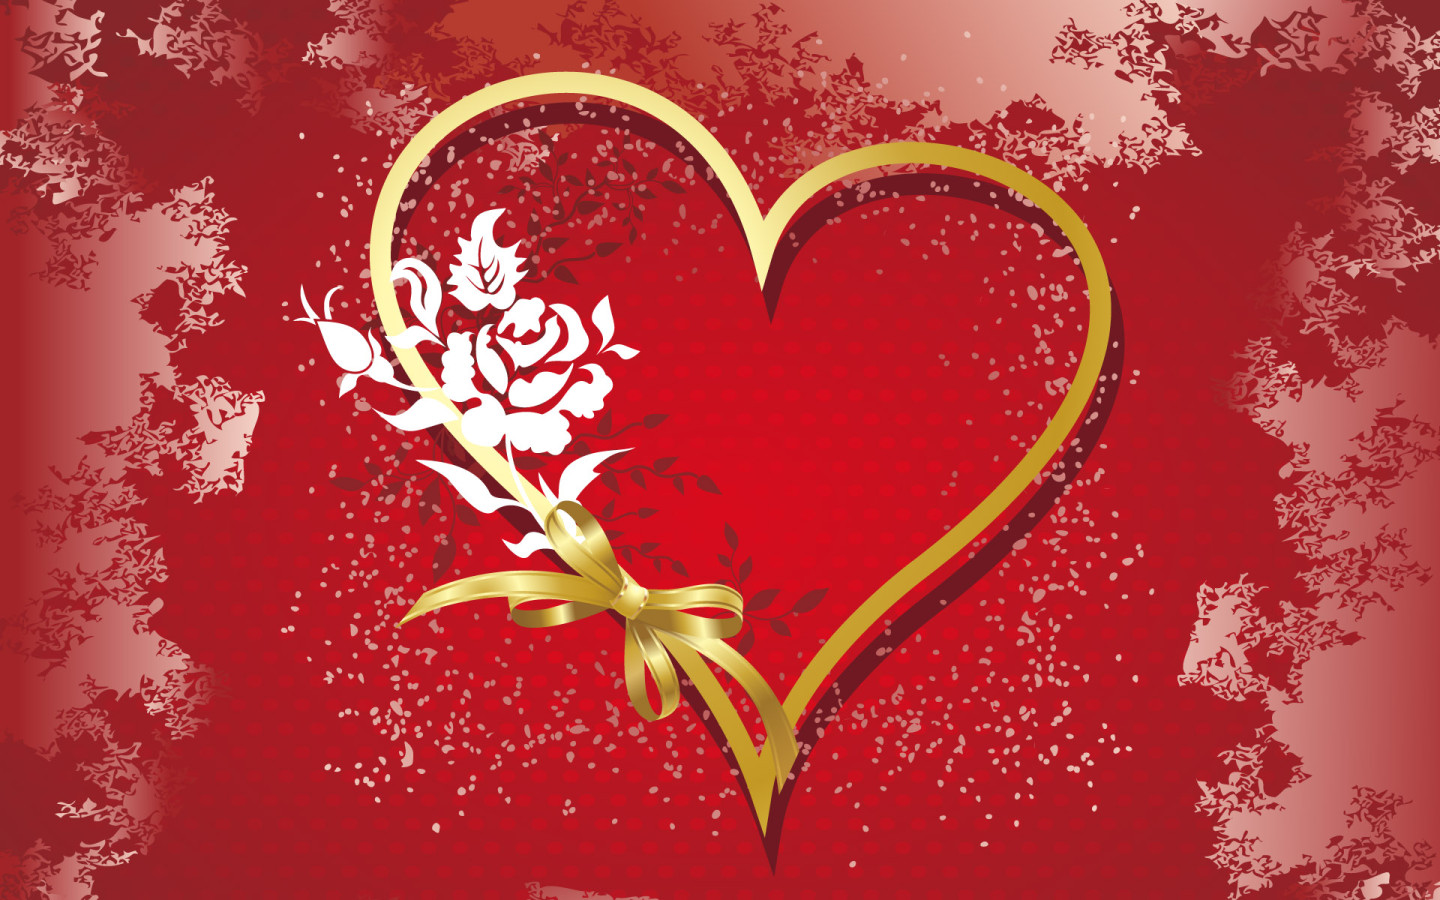 Valentine Hearts Wallpaper, Love Heart Wallpapers | Valentine's Day